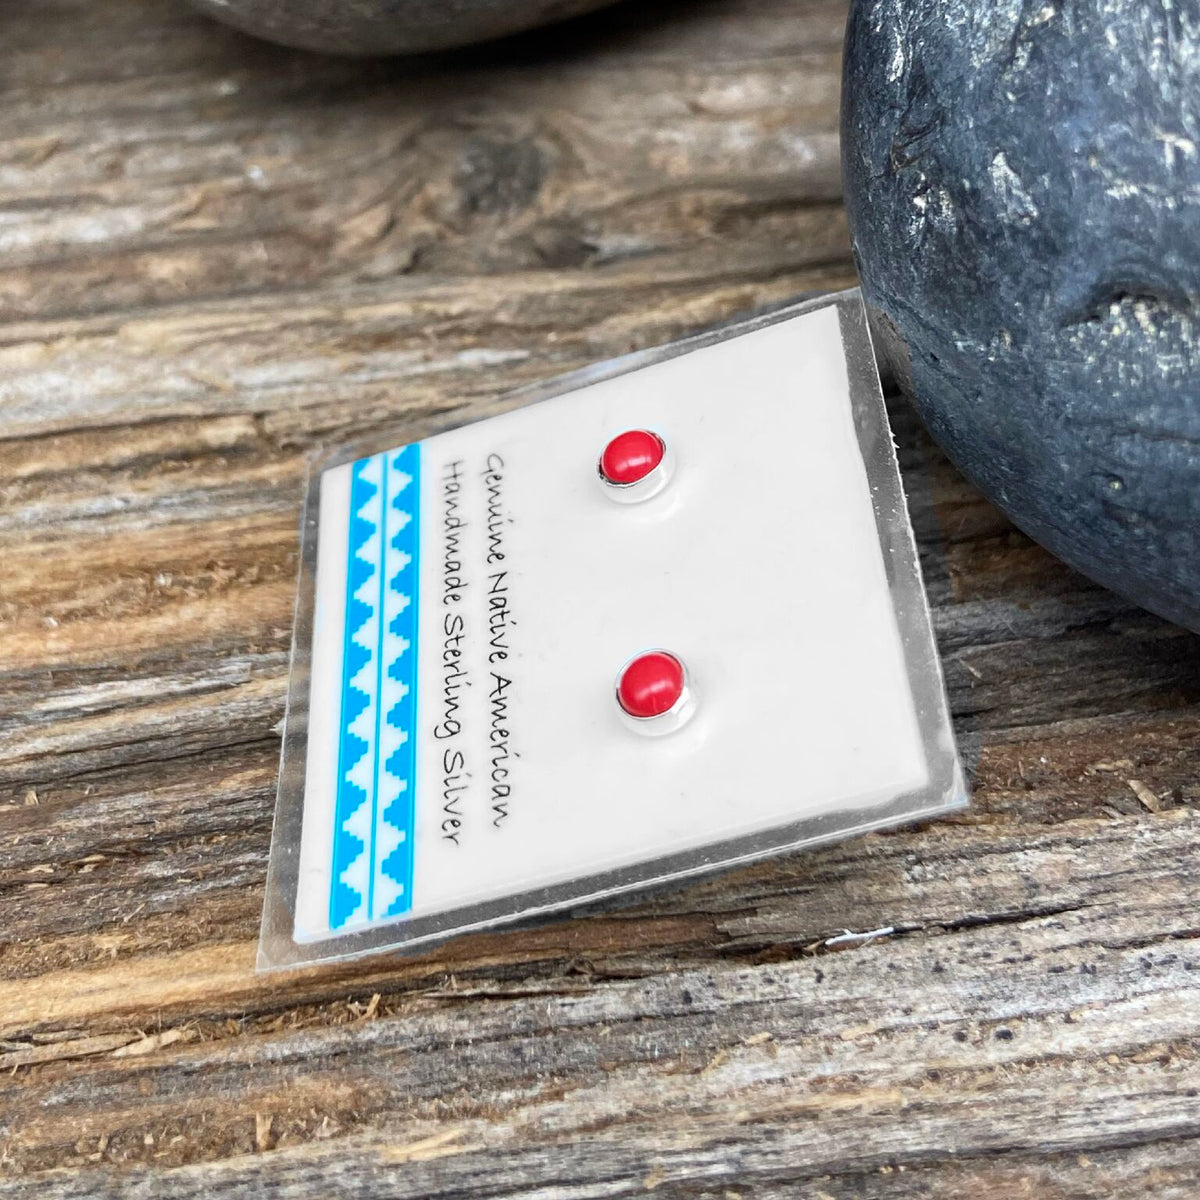 3mm Genuine Red Coral Stud Earrings in 925 Sterling Silver, Native American Handmade in the USA, Nickle Free